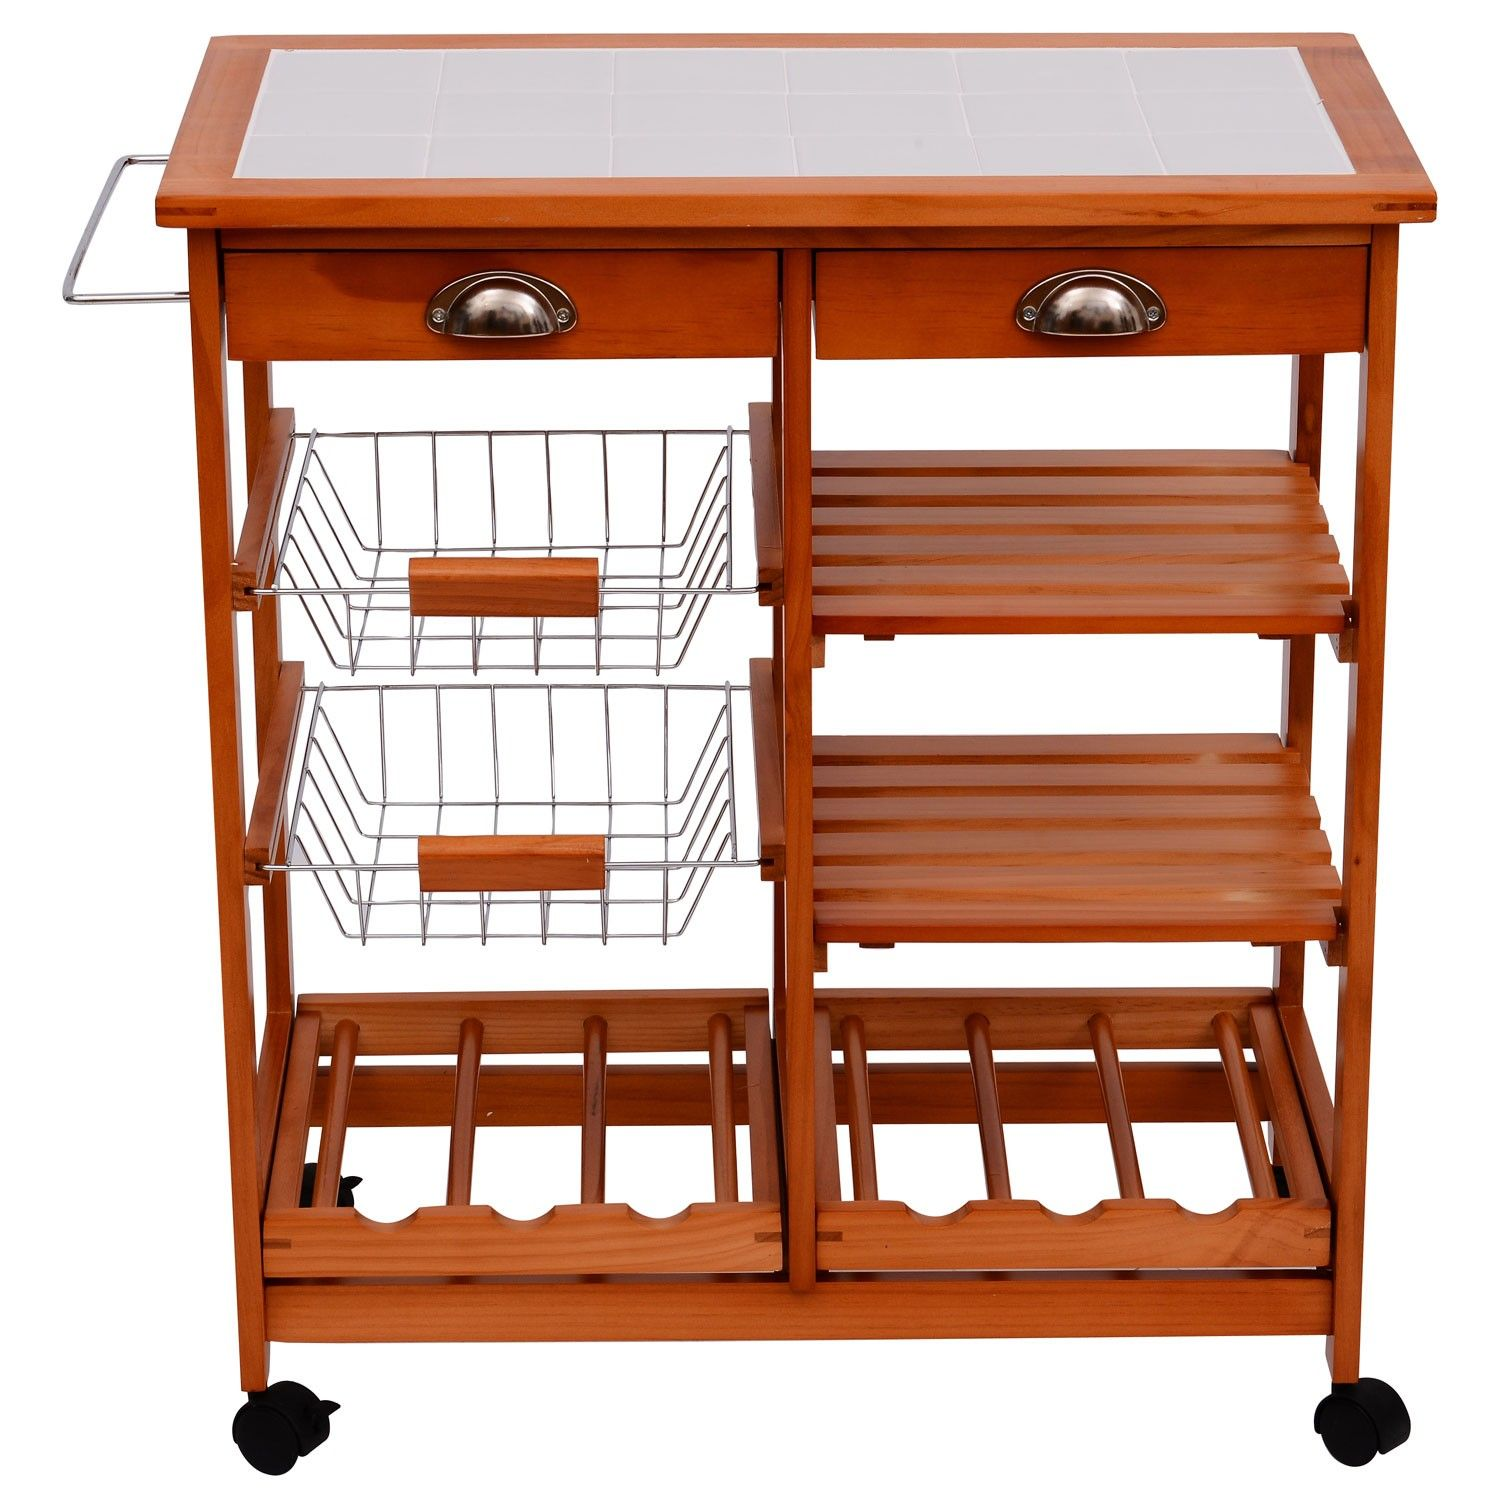 Hom Wooden Kitchen Trolley Cart Drawers Wood Fruit Ve able